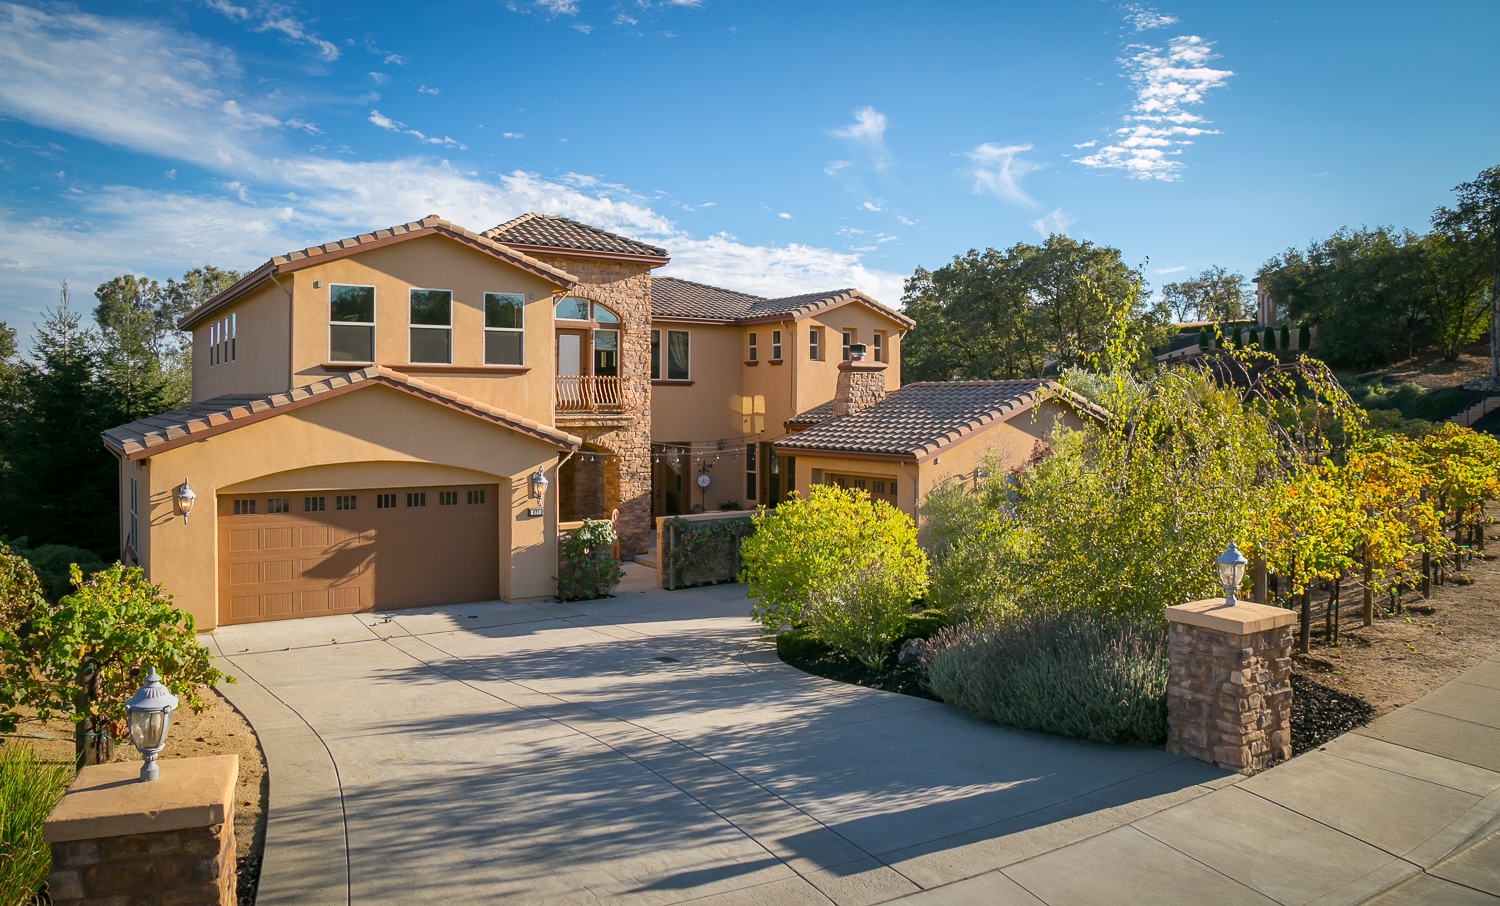 New Homes For Sale In East Bay Ca